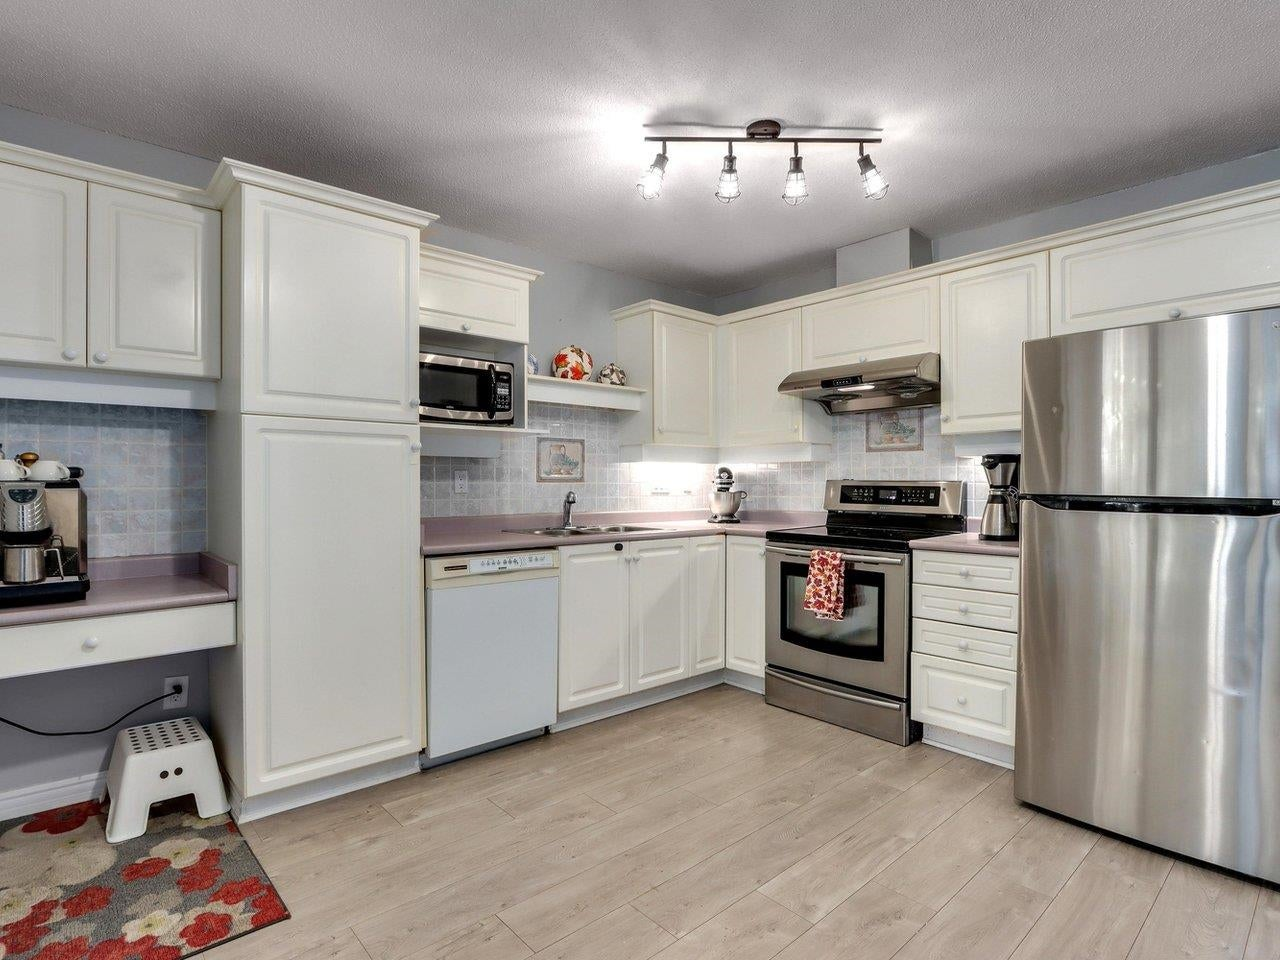 302 412 TWELFTH STREET - Uptown NW Apartment/Condo for sale, 2 Bedrooms (R2625659) - #8